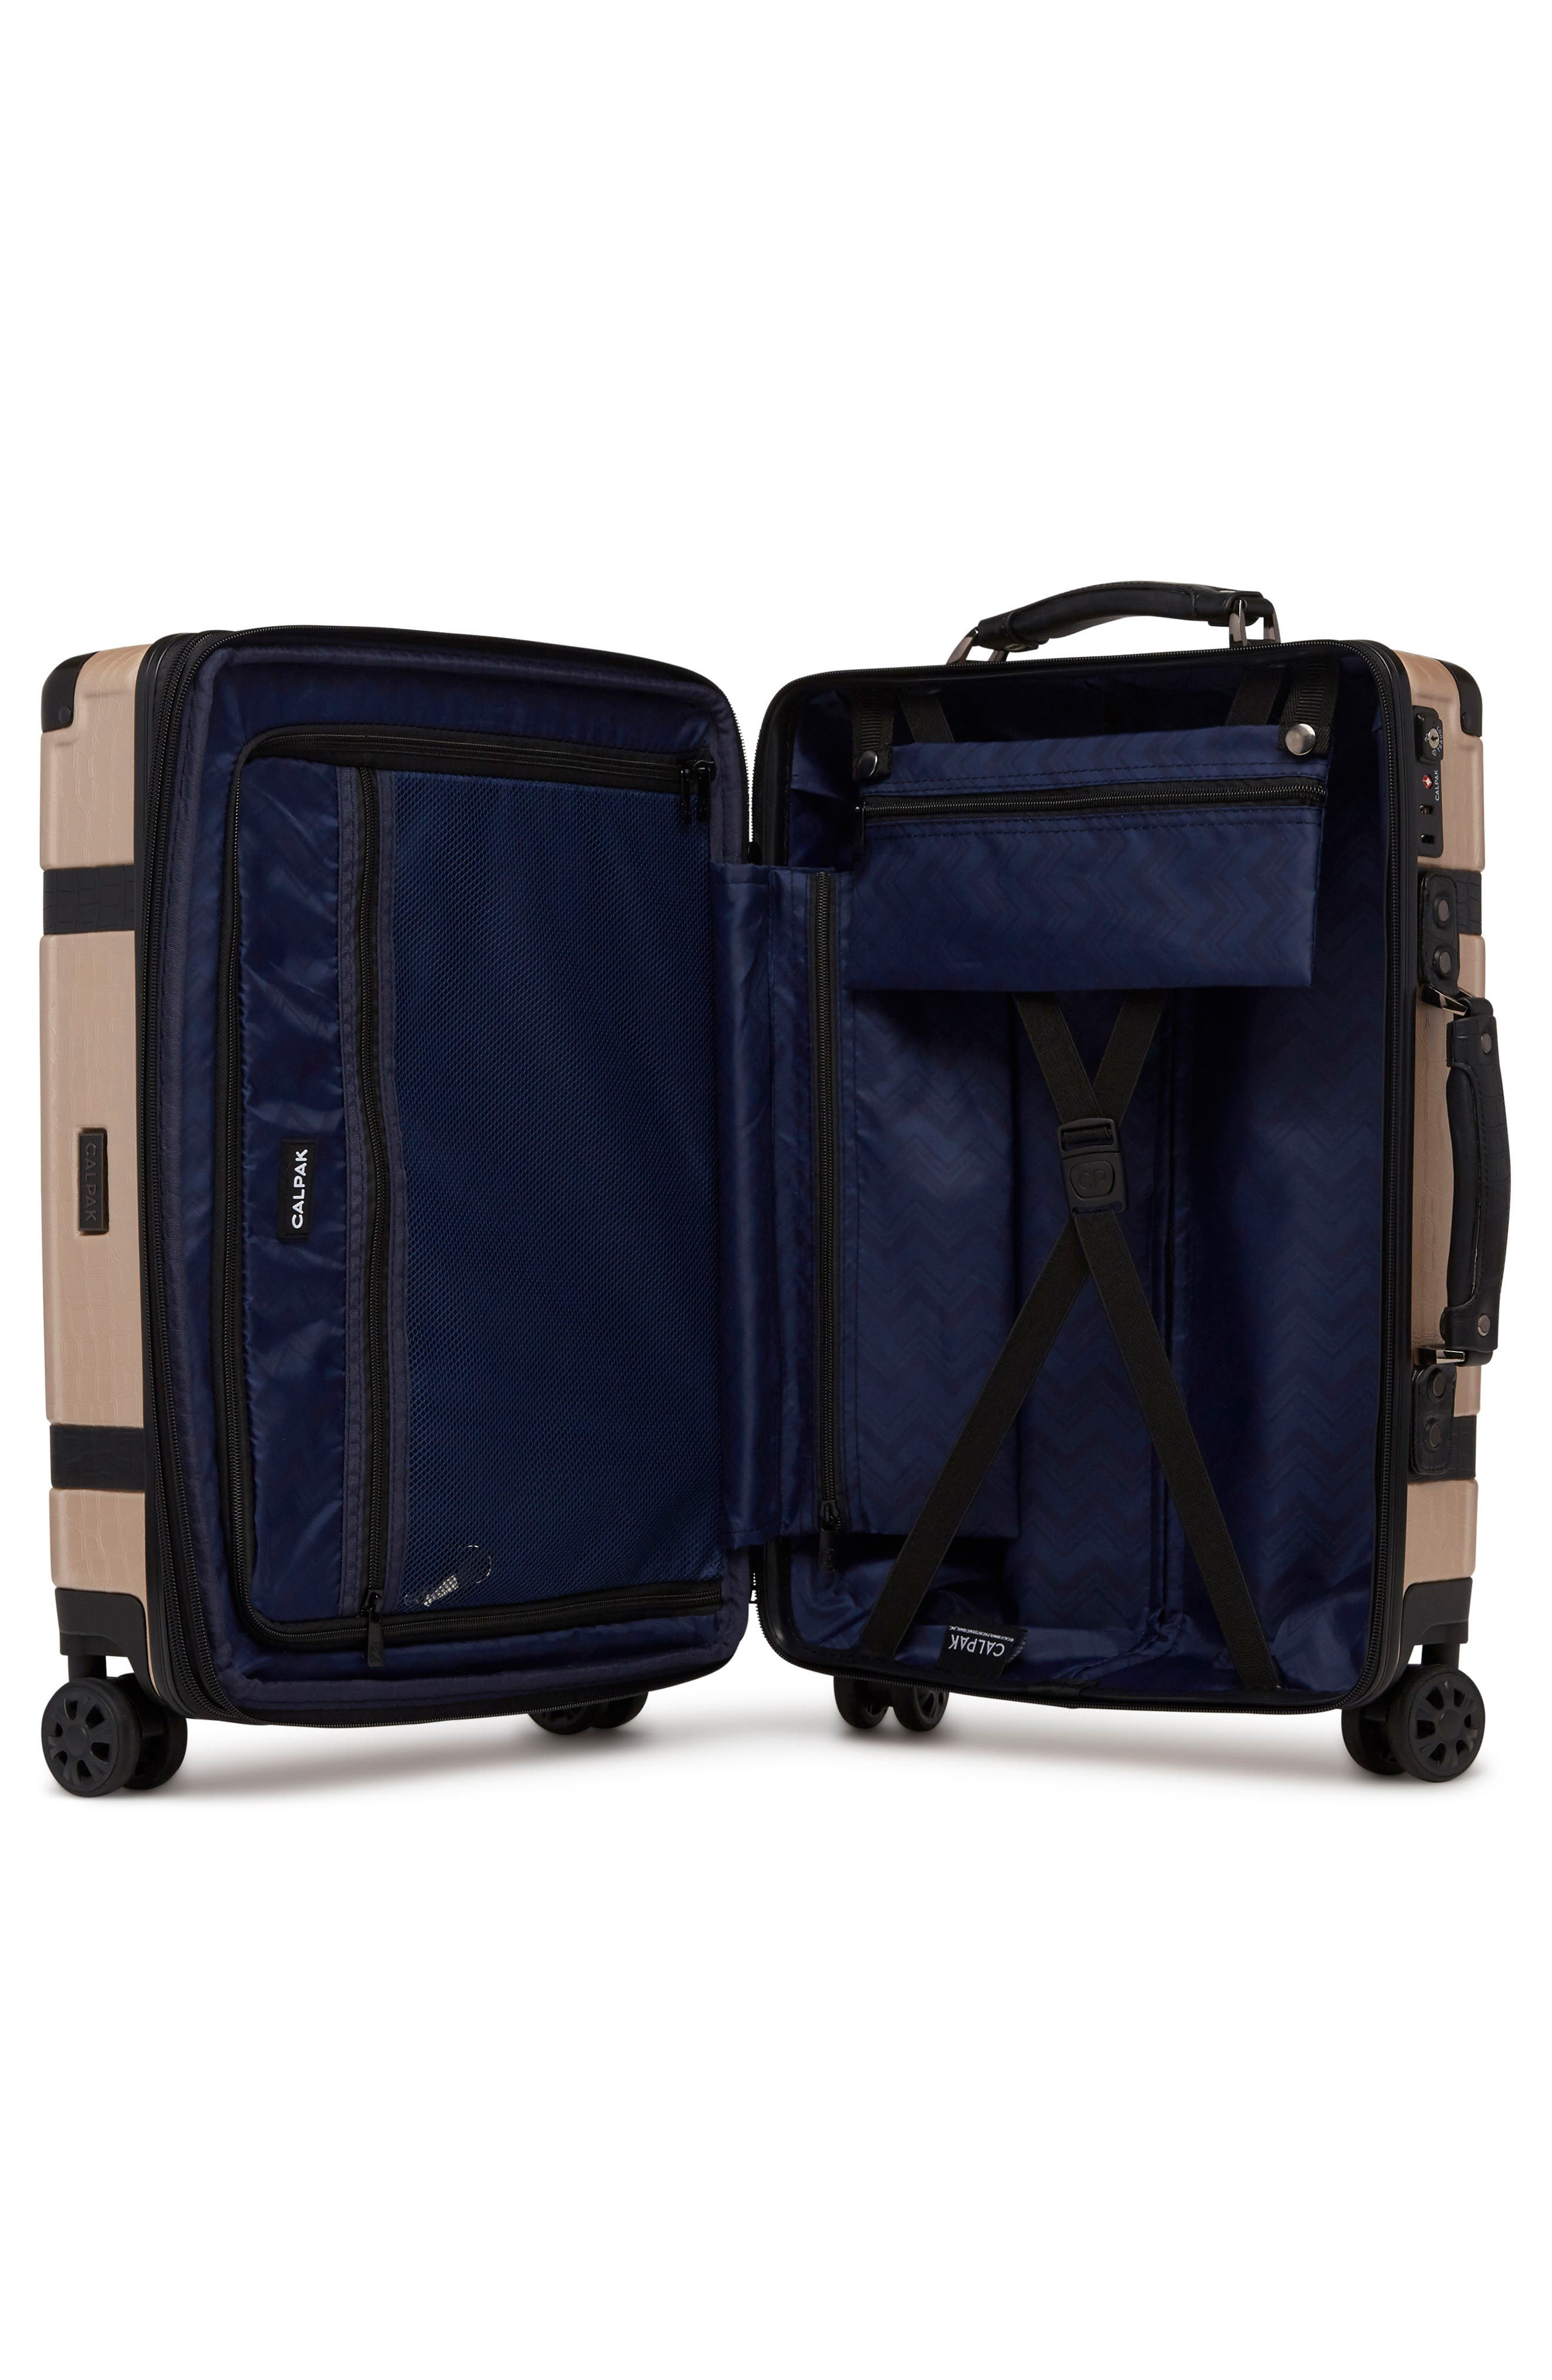 20-Inch & 28-Inch Trunk Rolling Luggage Set,                             Alternate thumbnail 3, color,                             Nude